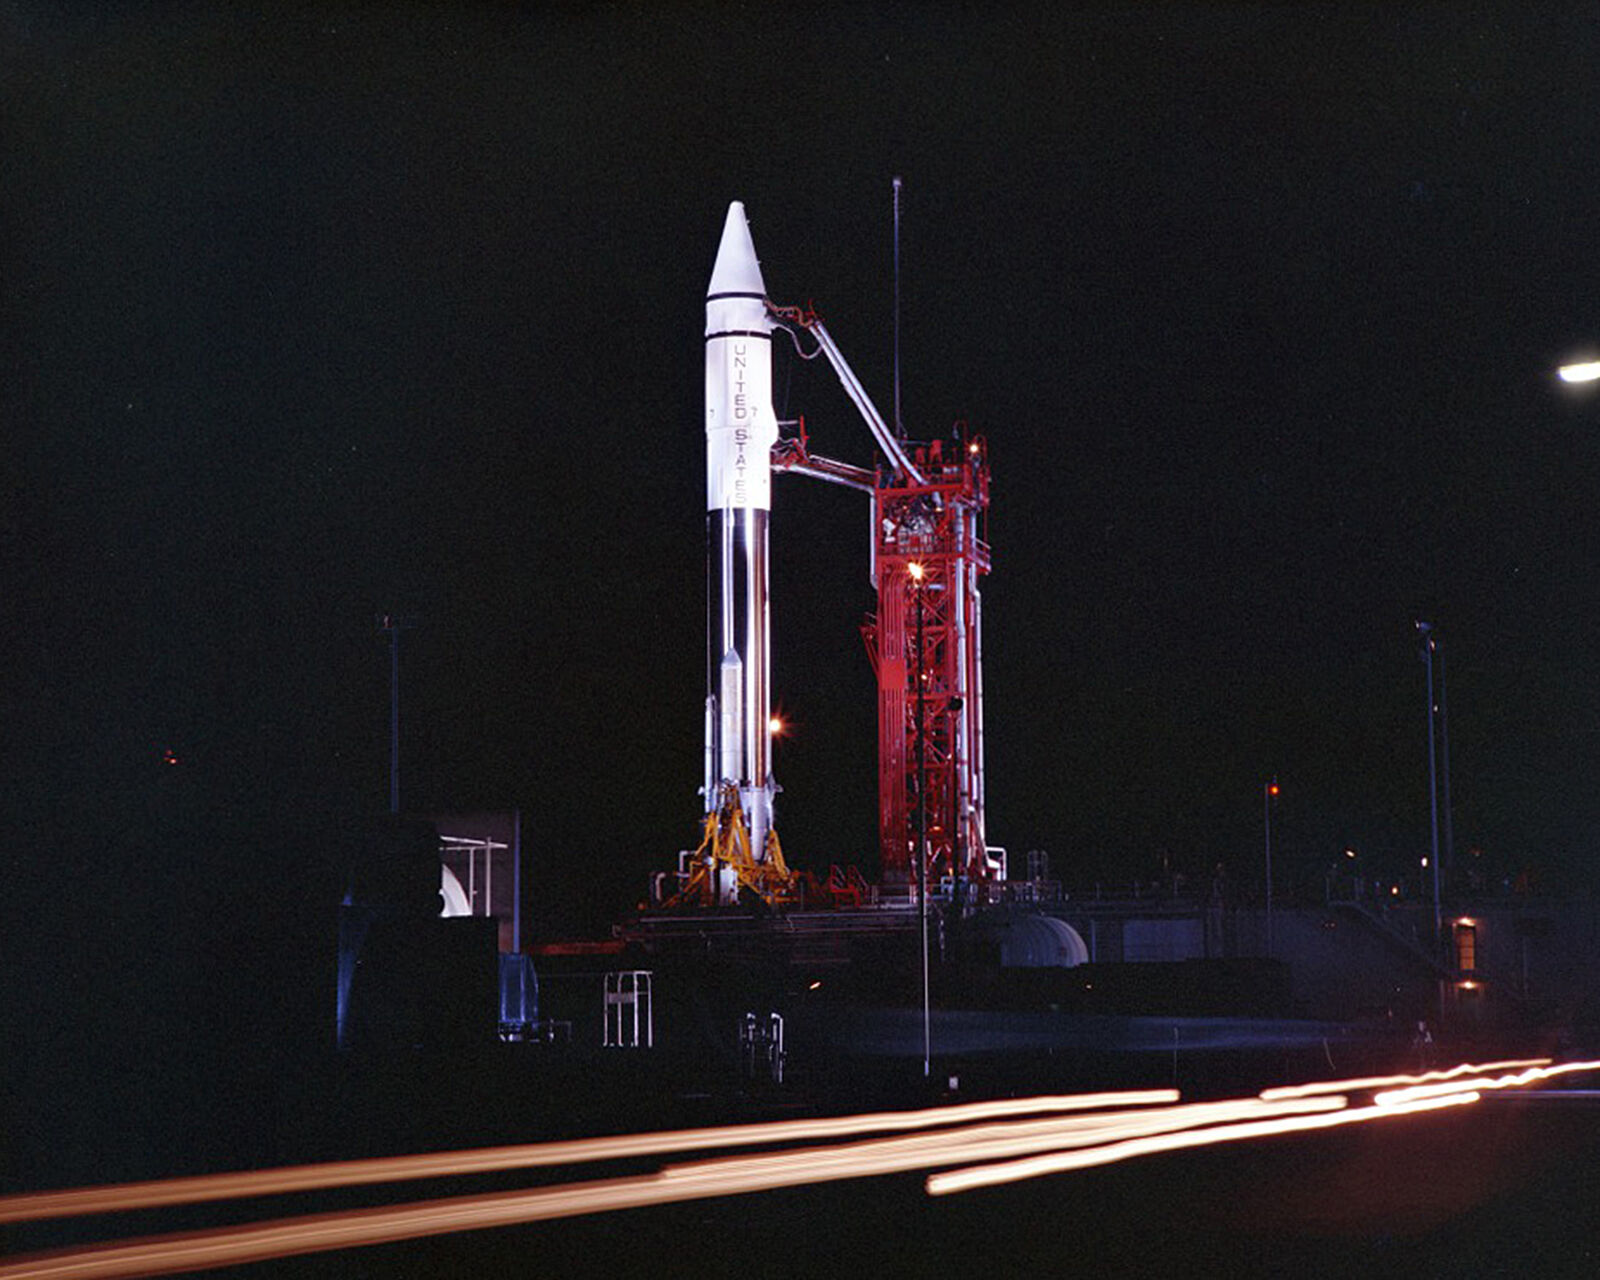 FILE - This Sept. 20, 1966 photo provided by the San Diego Air and Space Museum shows an Atlas Centaur 7 rocket on the launchpad at Cape Canaveral, Fla. (Convair/General Dynamics Astronautics Atlas Negative Collection/San Diego Air and Space Museum via AP)